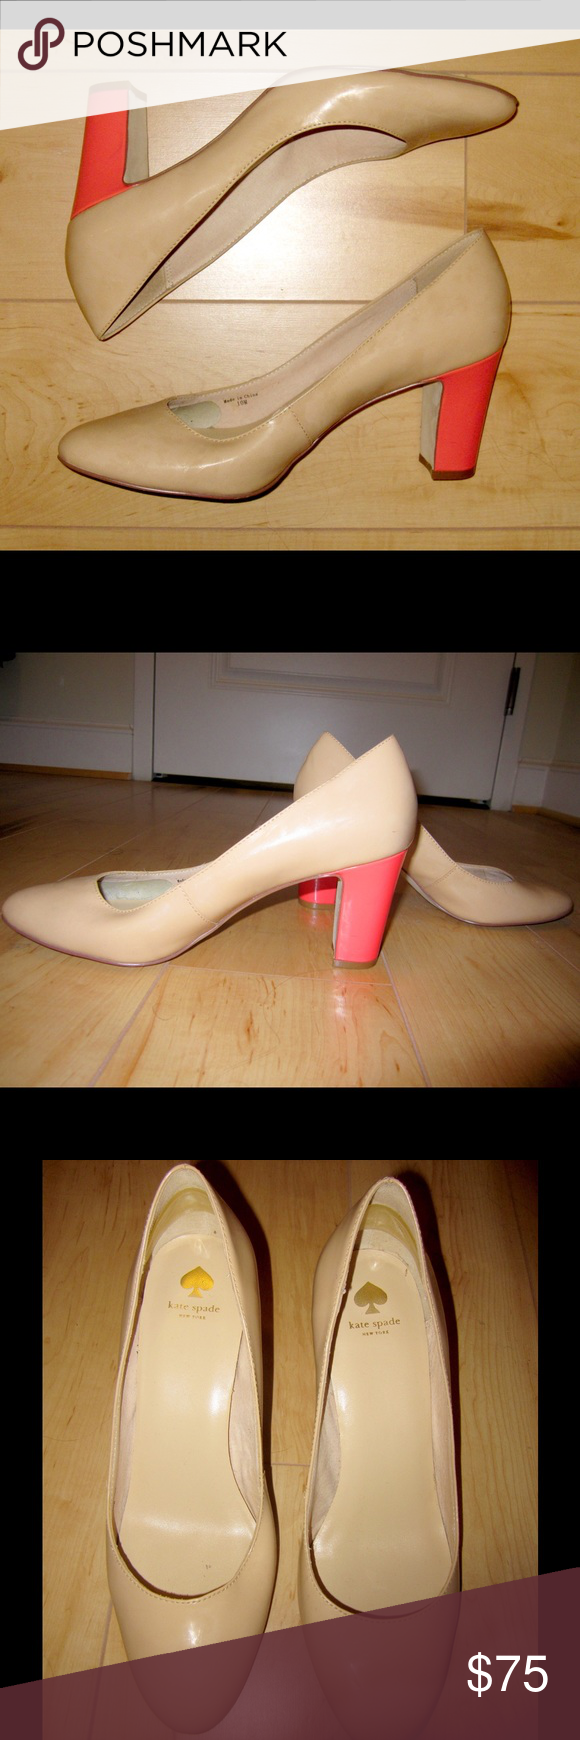 kate spade patent nude and pink heels size 10 Adorable kate spade new york patent heels! Nude color with a bright coral pink chunky heel. Small scuff on one heel and some signs of wear on soles. Would be so cute with boyfriend jeans and a tee shirt, or dressed up with a flowy skirt!  kate spade Shoes Heels